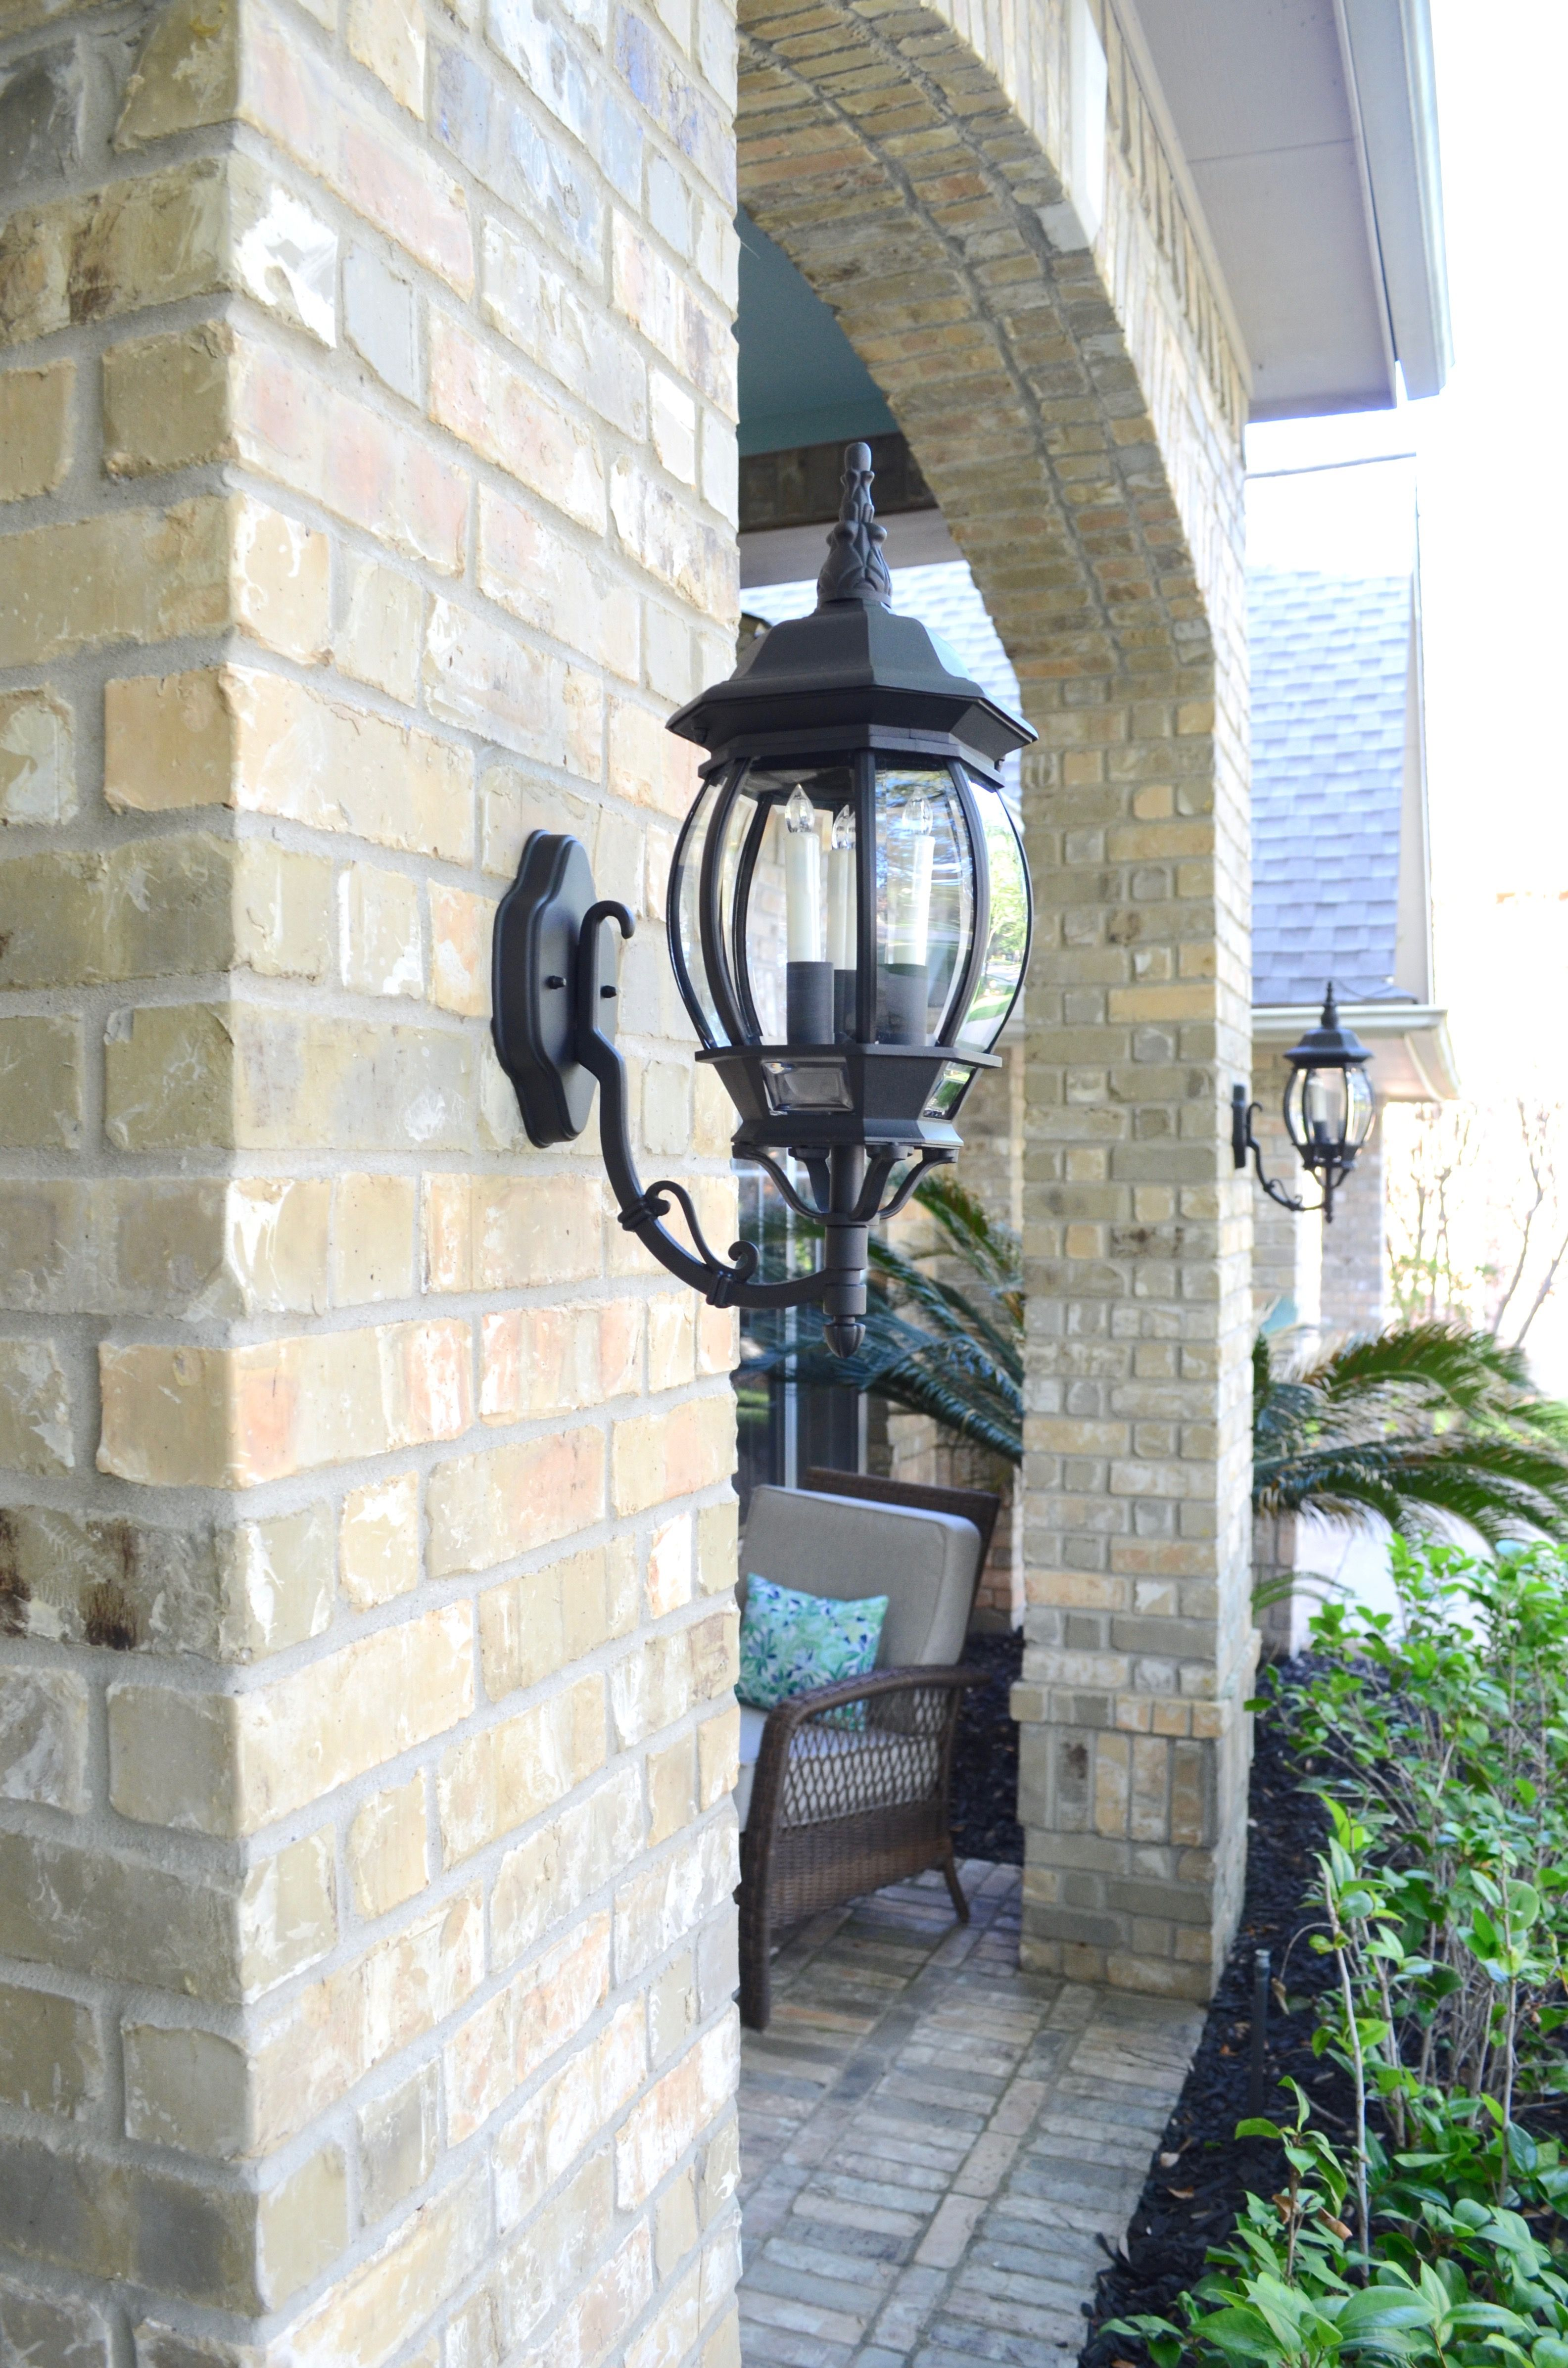 Outdoor Lights Outdoor Lantern Led Candle Lantern Front Porch Front Porch Ideas Adding Curb Appeal Easy Curb Appeal Light With N Outdoor Lighting Candle Lanterns Led Candles